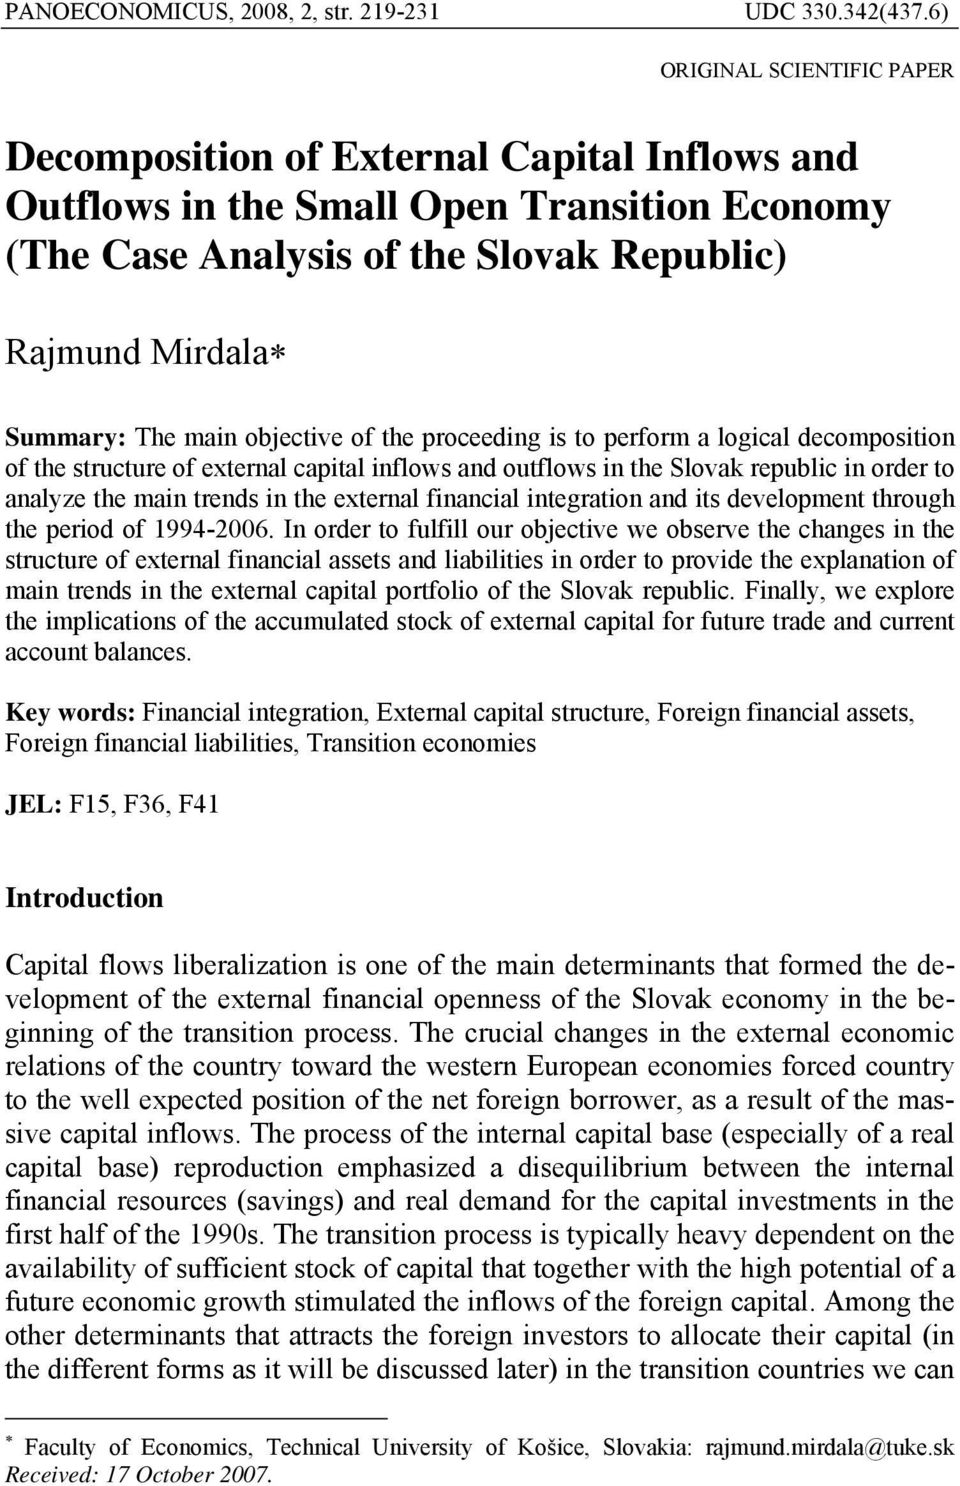 objective of the proceeding is to perform a logical decomposition of the structure of external capital inflows and outflows in the Slovak republic in order to analyze the main trends in the external